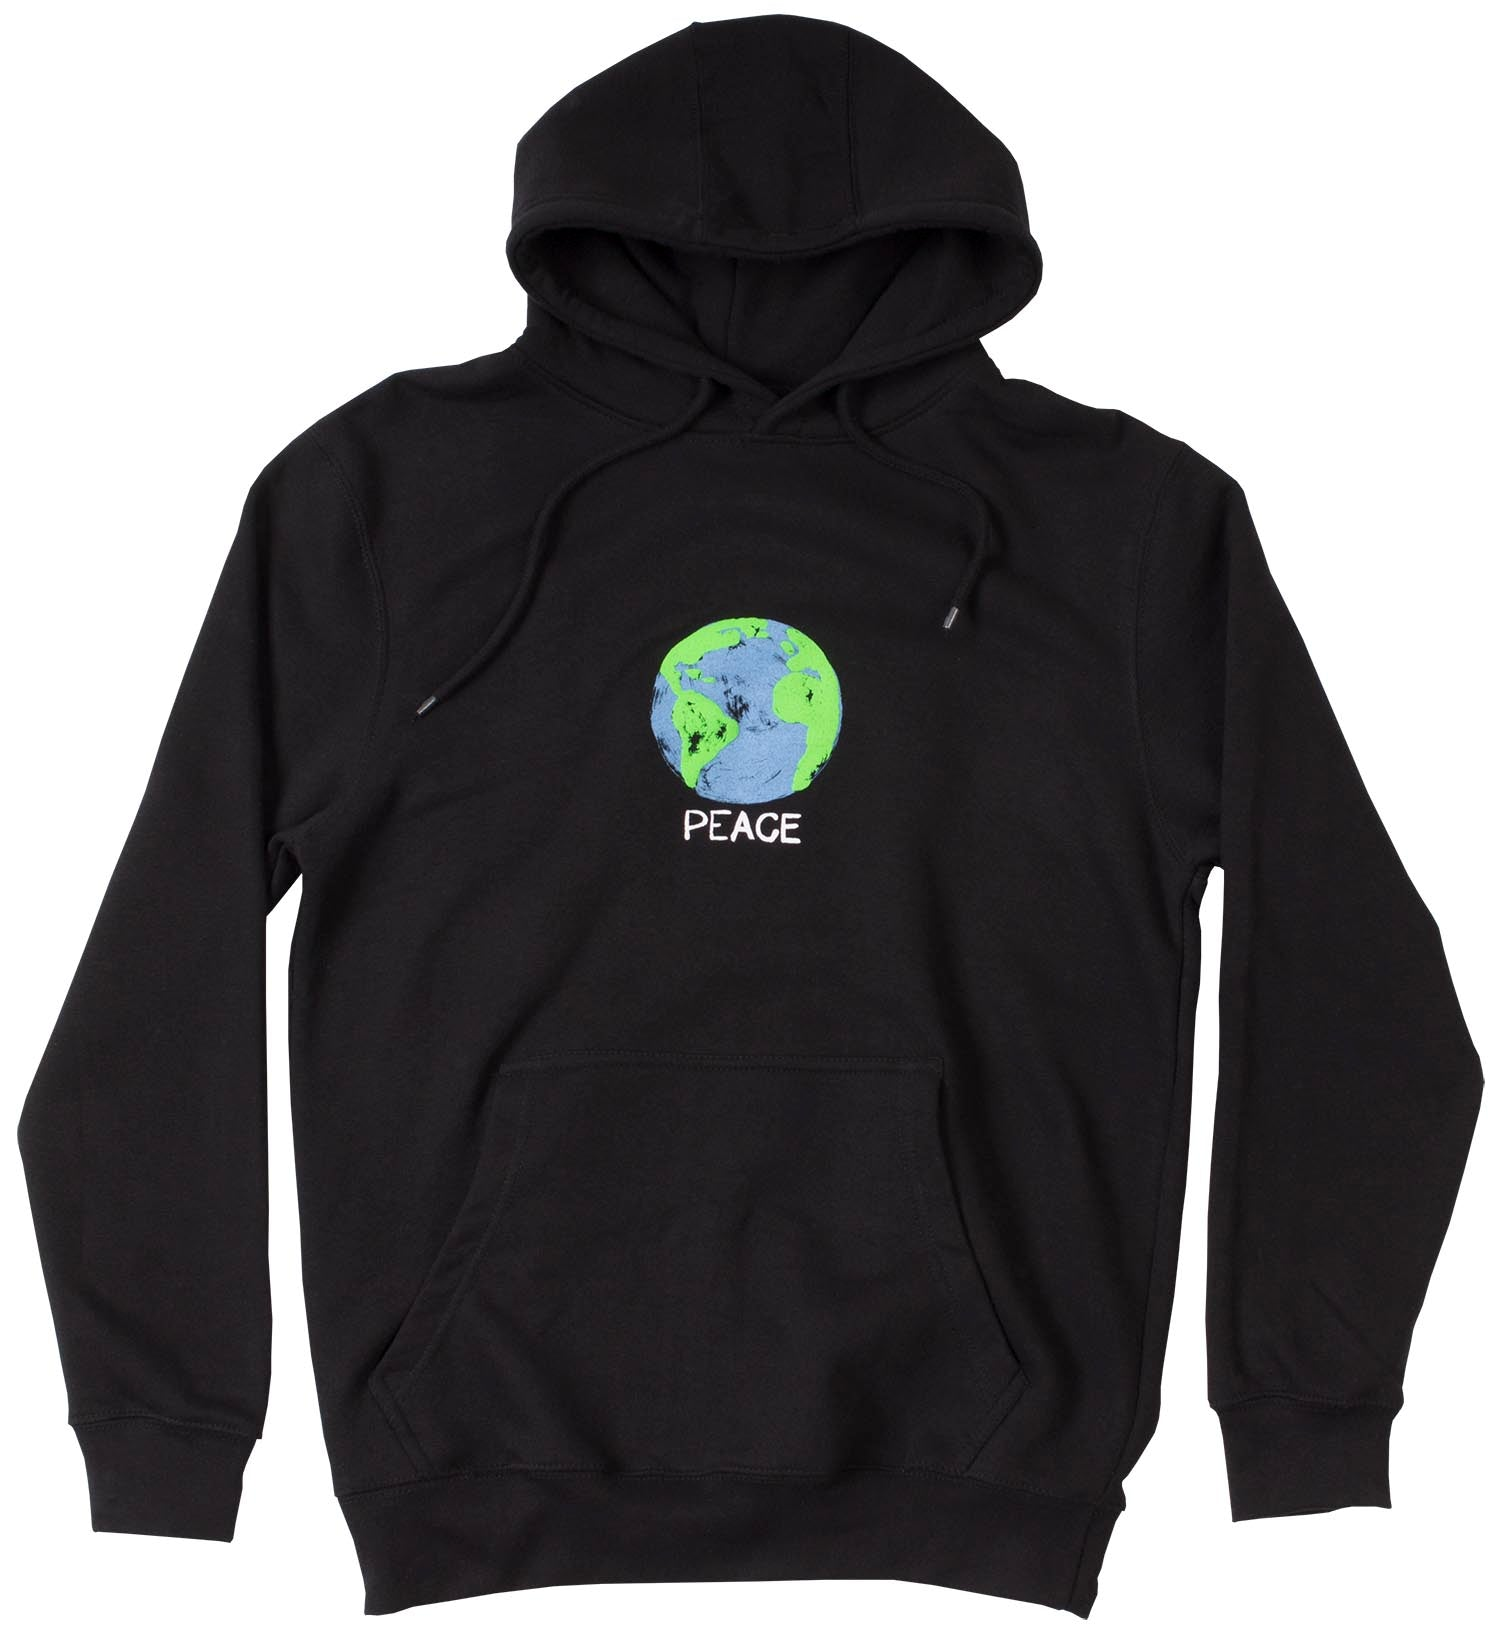 World Peace Hoodie by Altru Apparel